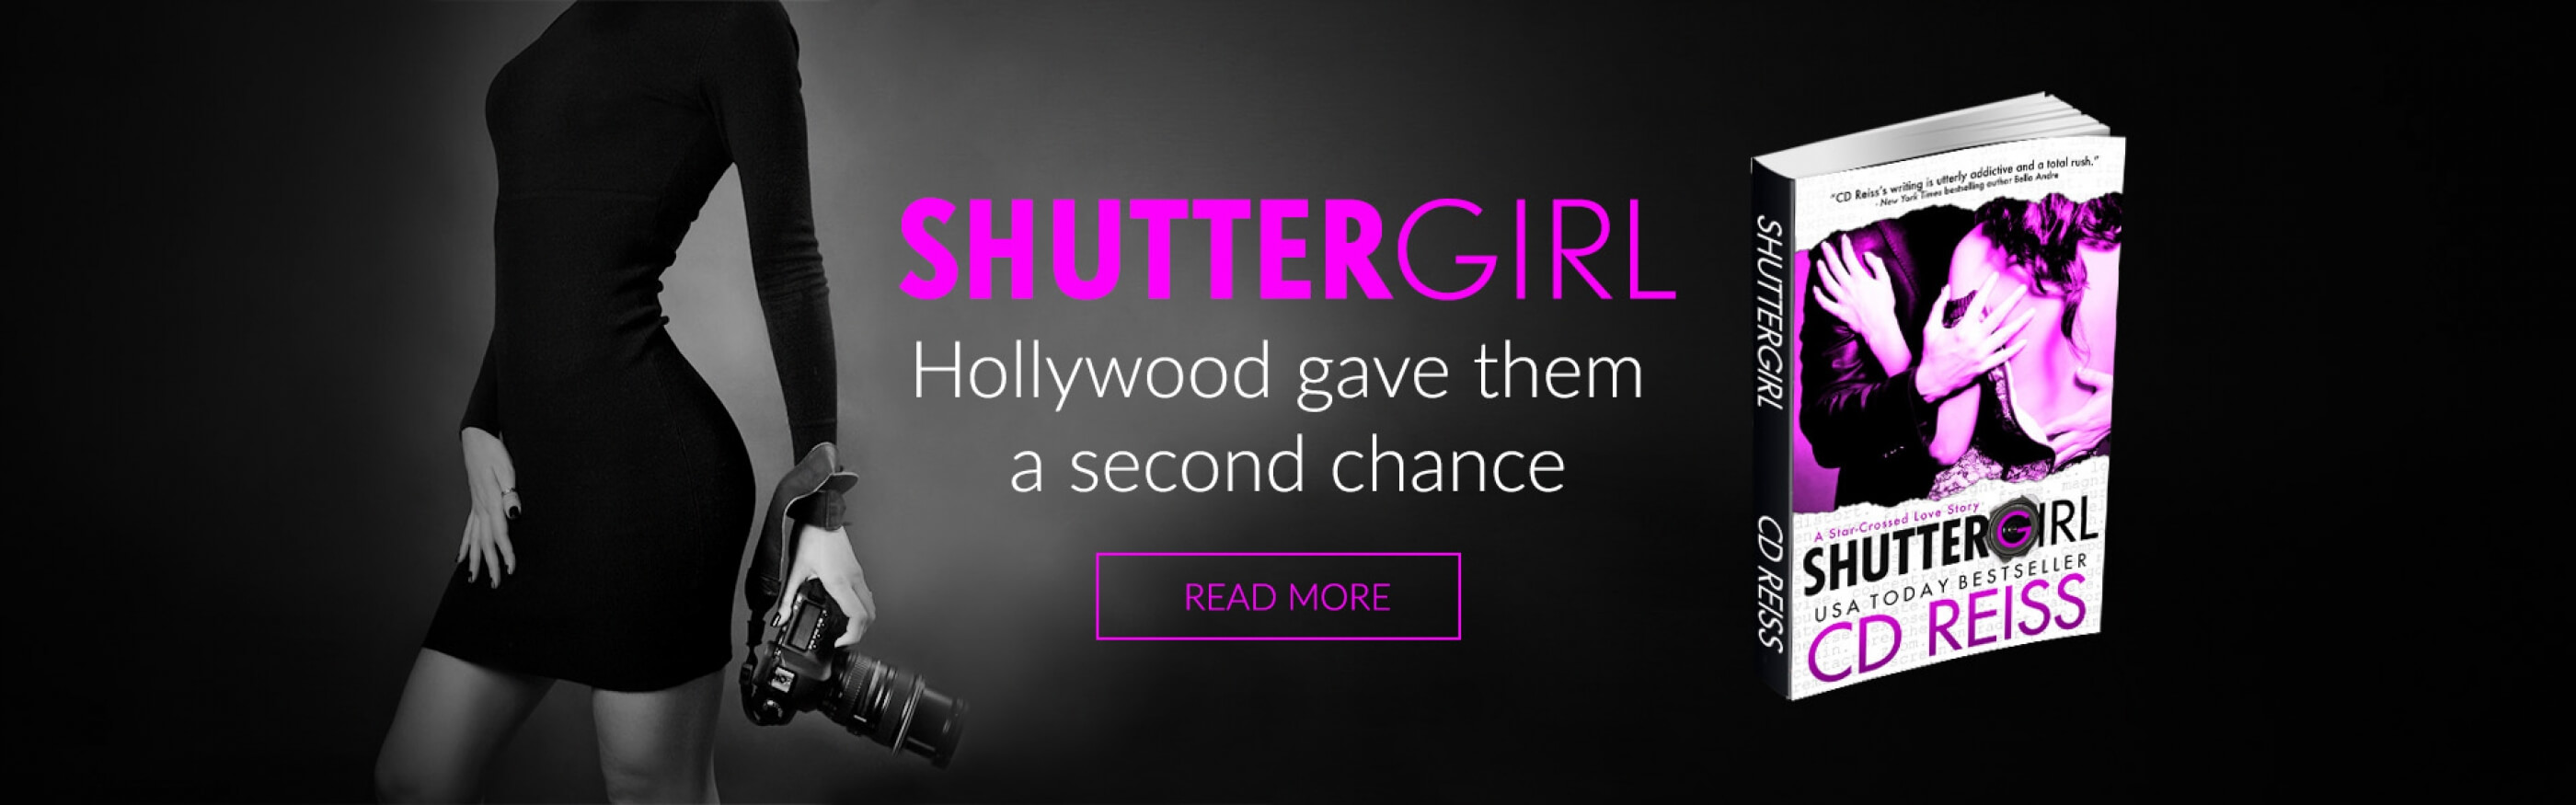 Shuttergirl by NYT Bestselling Romance author CD Reiss